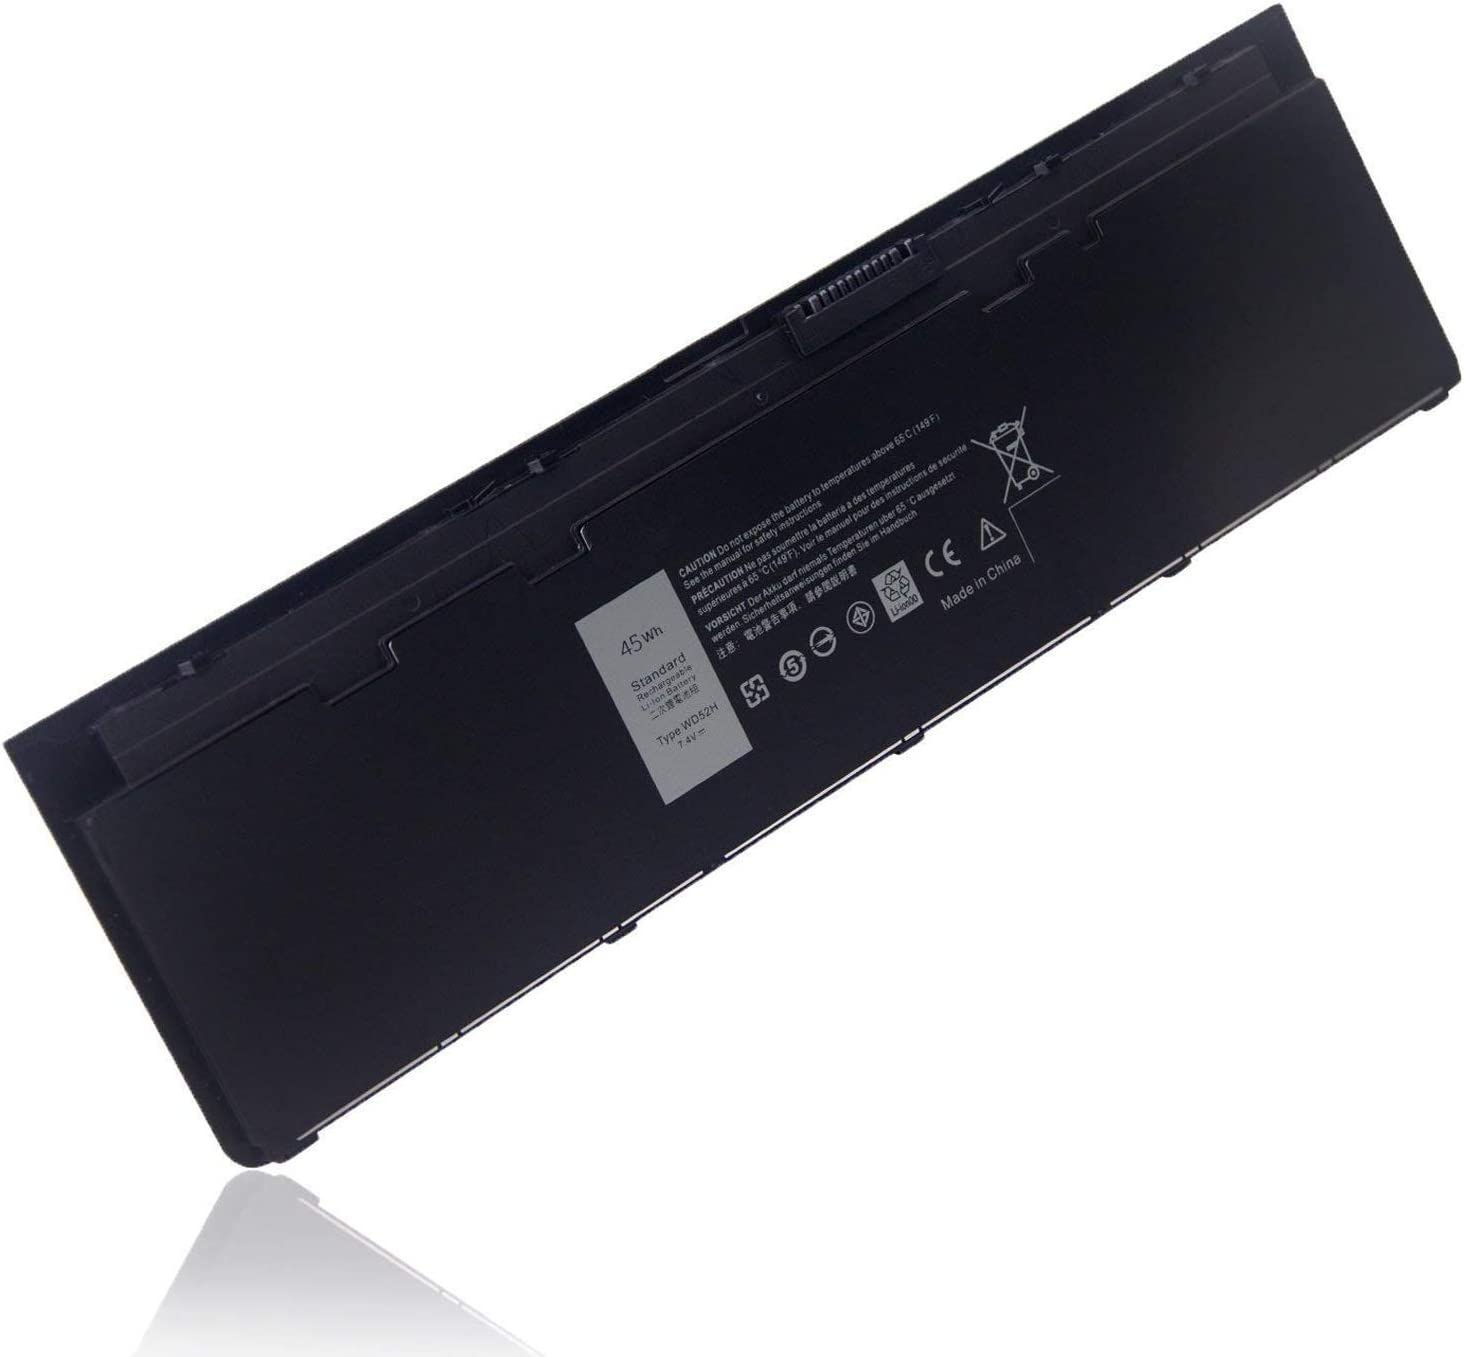 Ding New WD52H Replacement Laptop Battery Compatible with Dell Latitude F3G33 E7240 VFV59 KWFFN J31N7 451-BBFW 451-BBFX GVD76 HJ8KP NCVF0 GD076 (7.4V 45Wh)